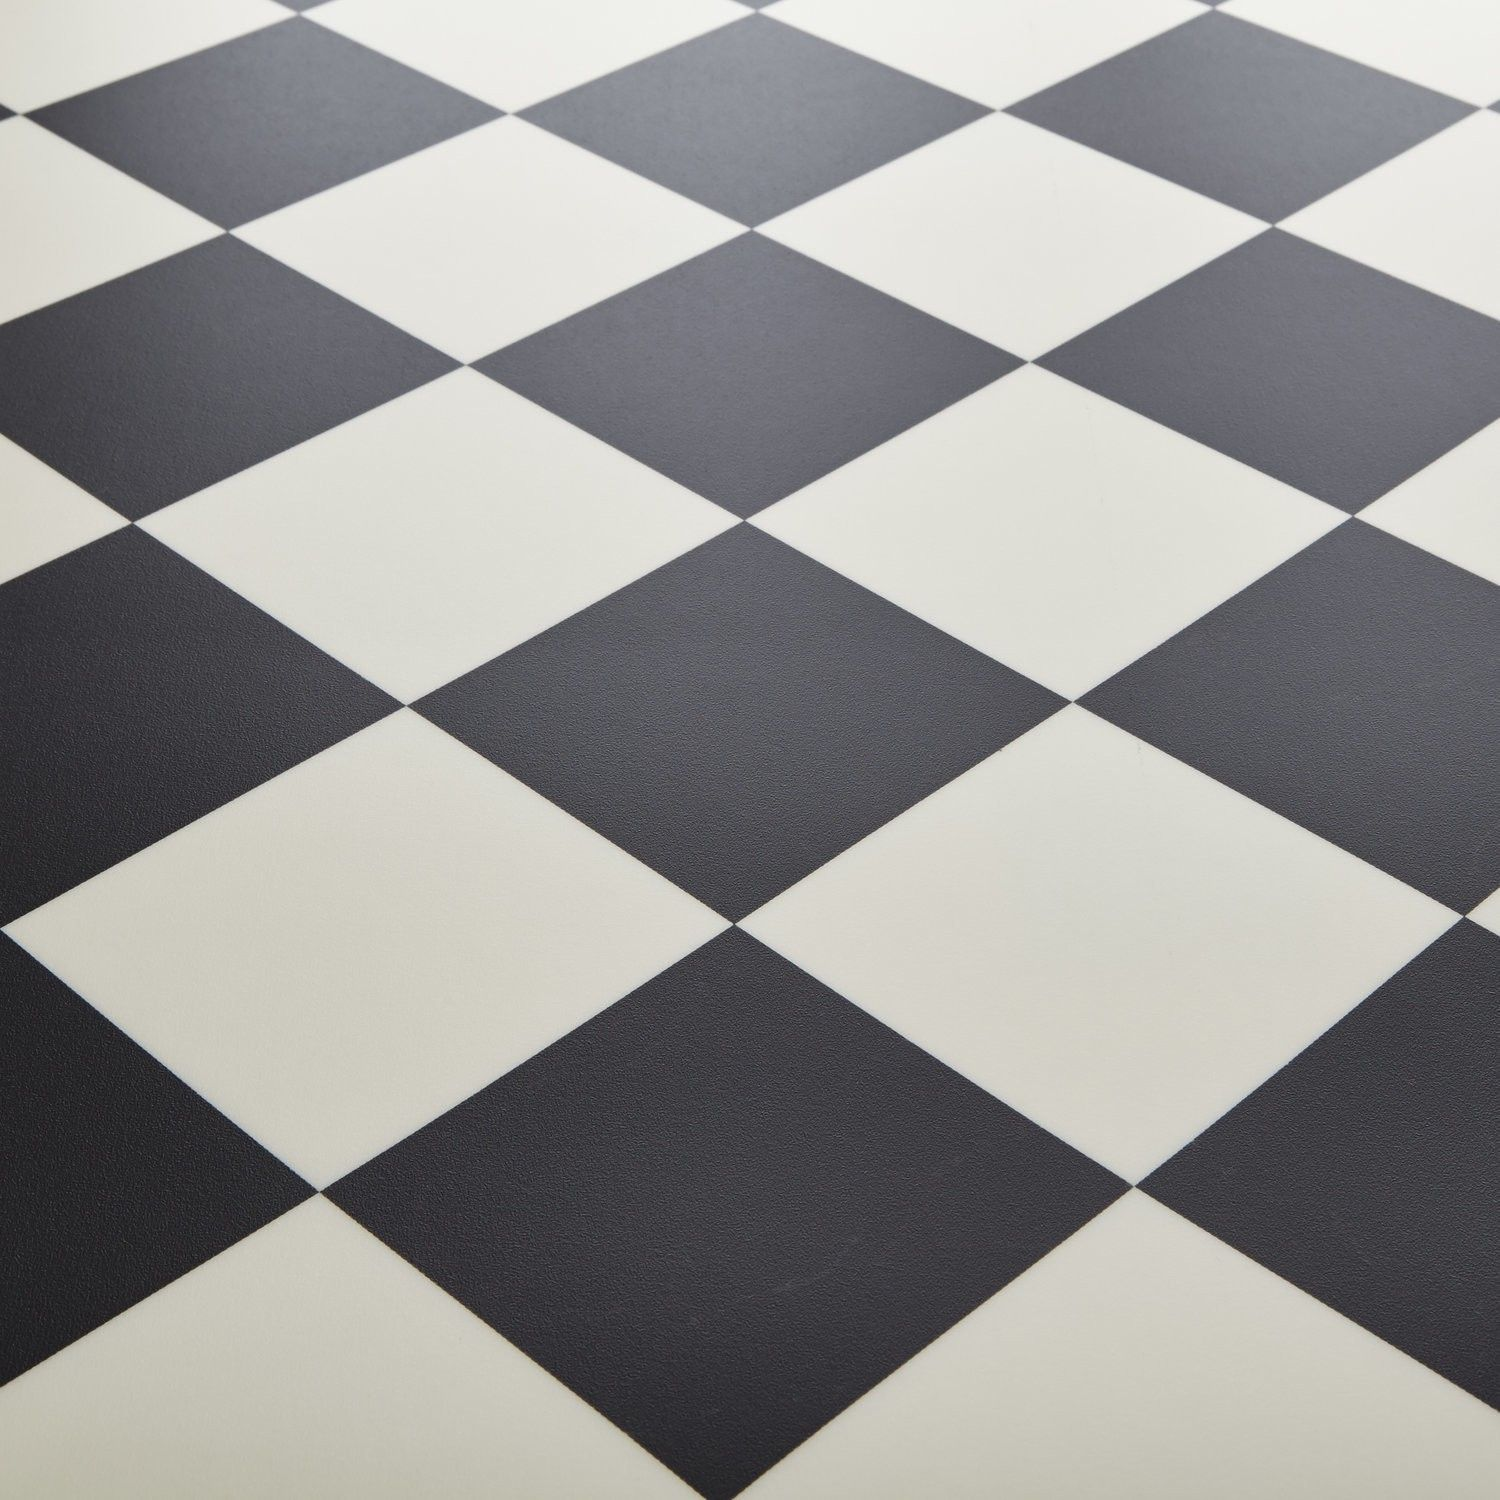 Rhino Champion Pisa Black White Chequered Tile Vinyl